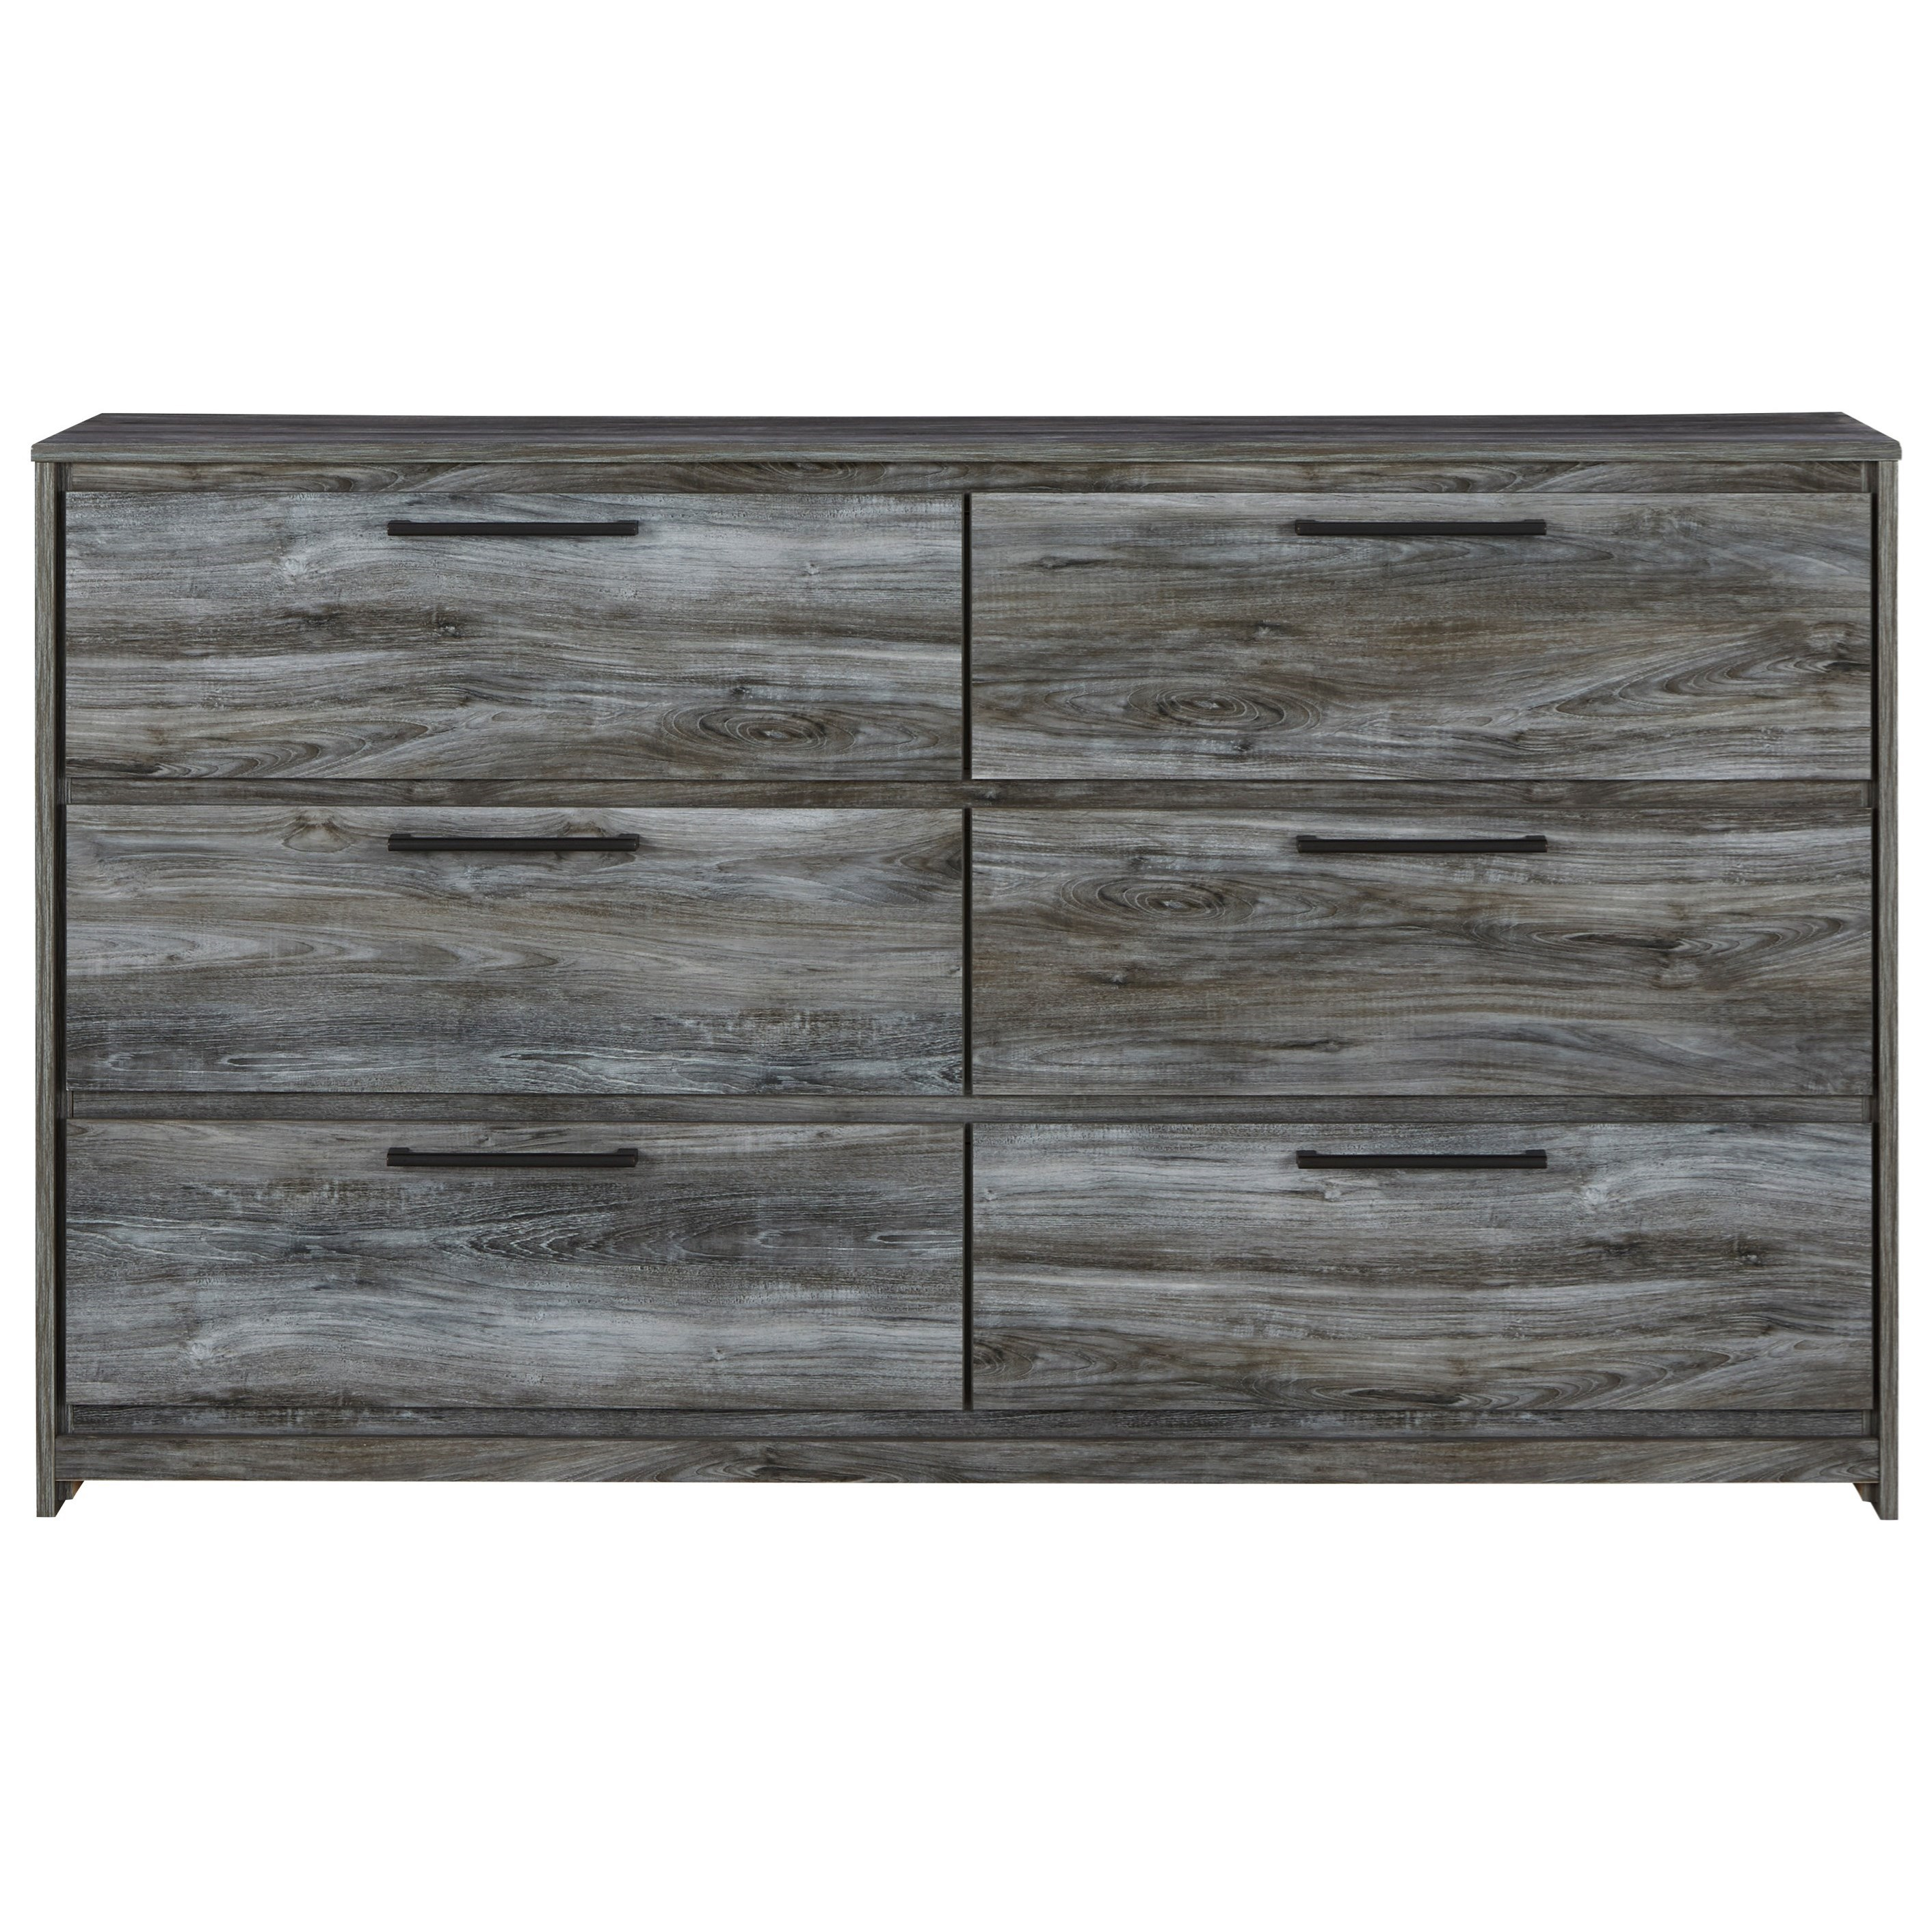 Signature Design by Ashley Baystorm Dresser - Item Number: B221-31